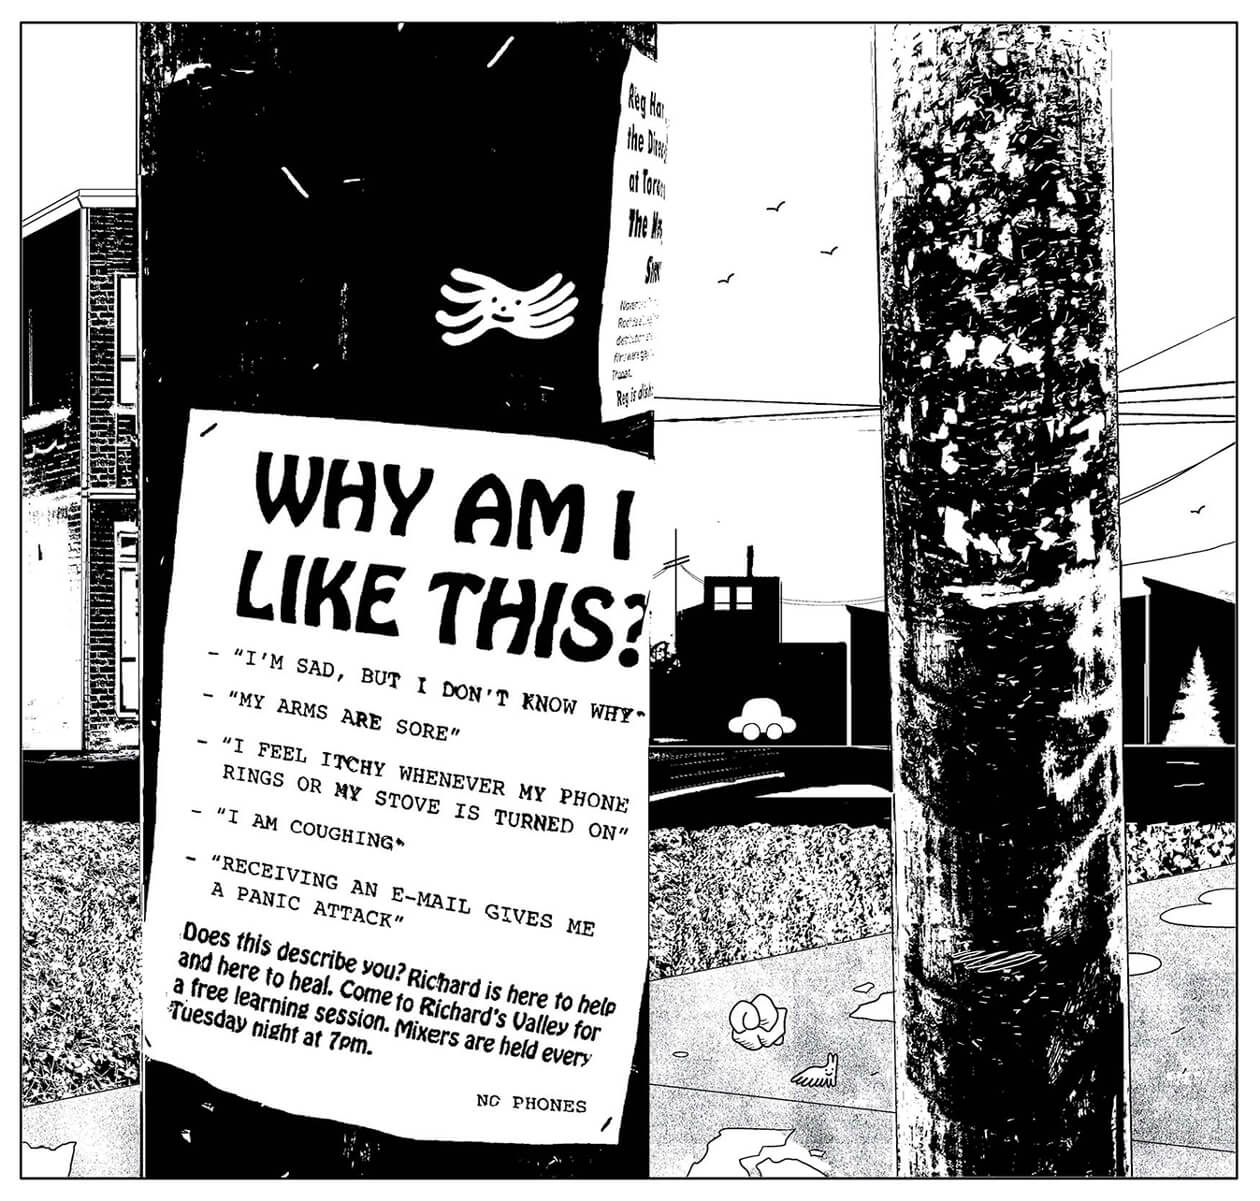 """An illustration of a poster that reads """"Why am I like this?"""" stapled to on a pole"""